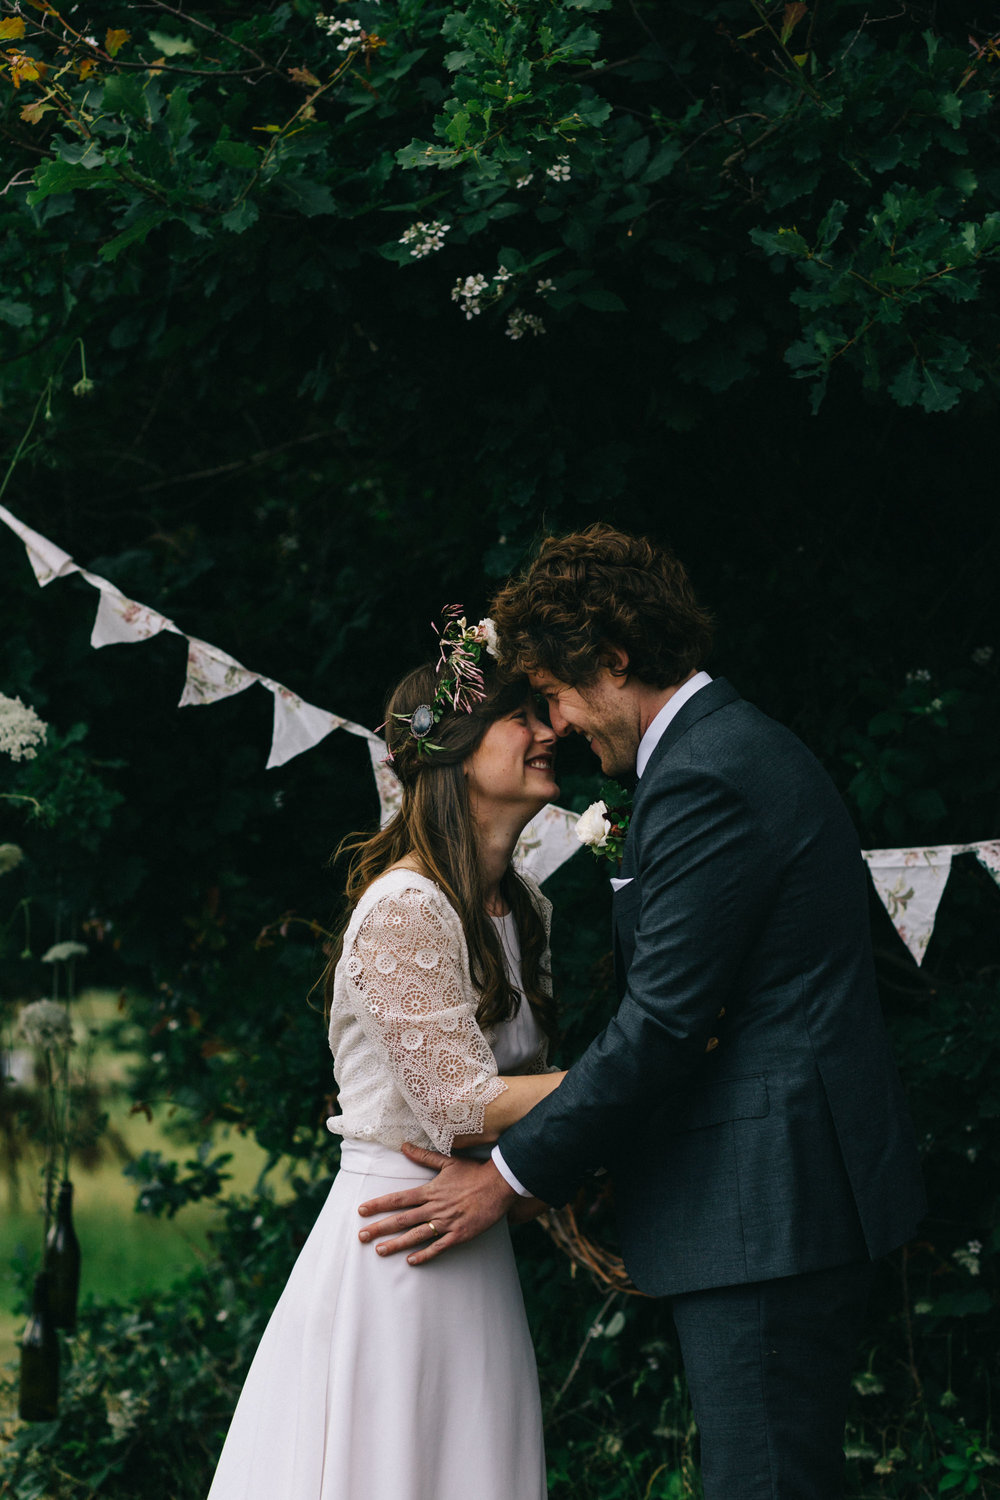 Marnie Hawson, Melbourne ethical wedding photographer